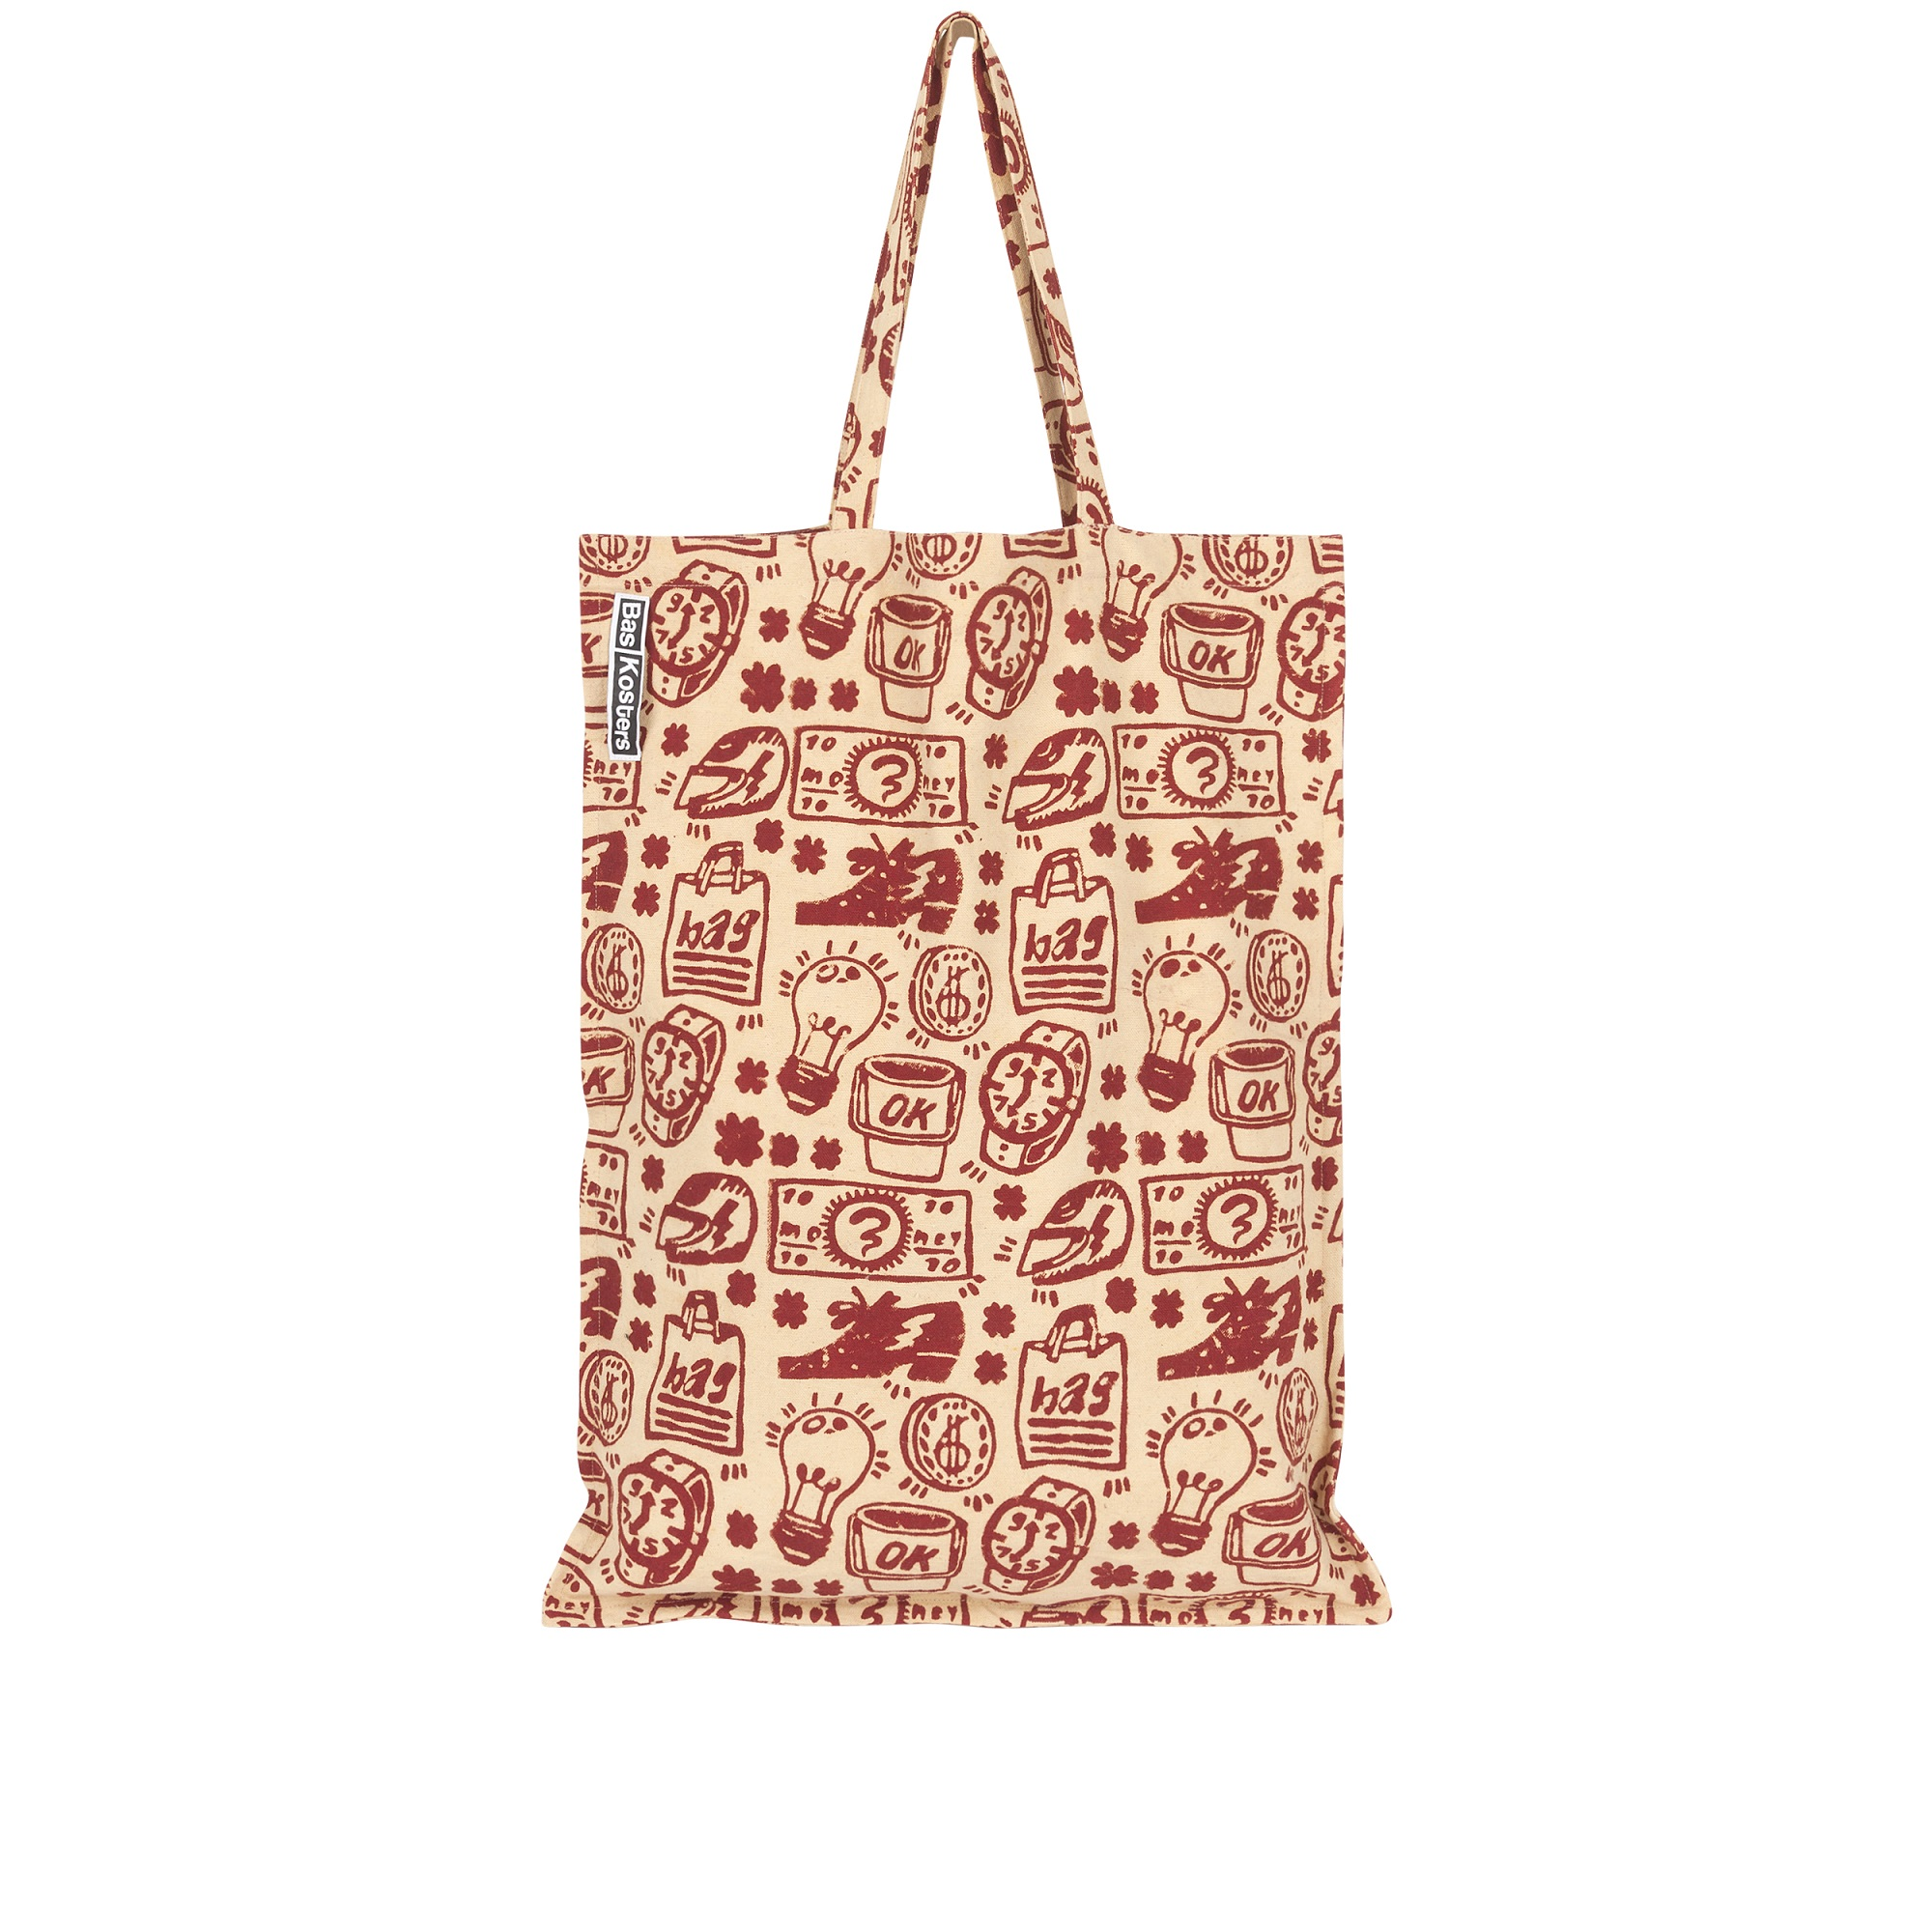 BIG-TOTE-BAG-INDIA-STREET-LIFE-PRINT-RED